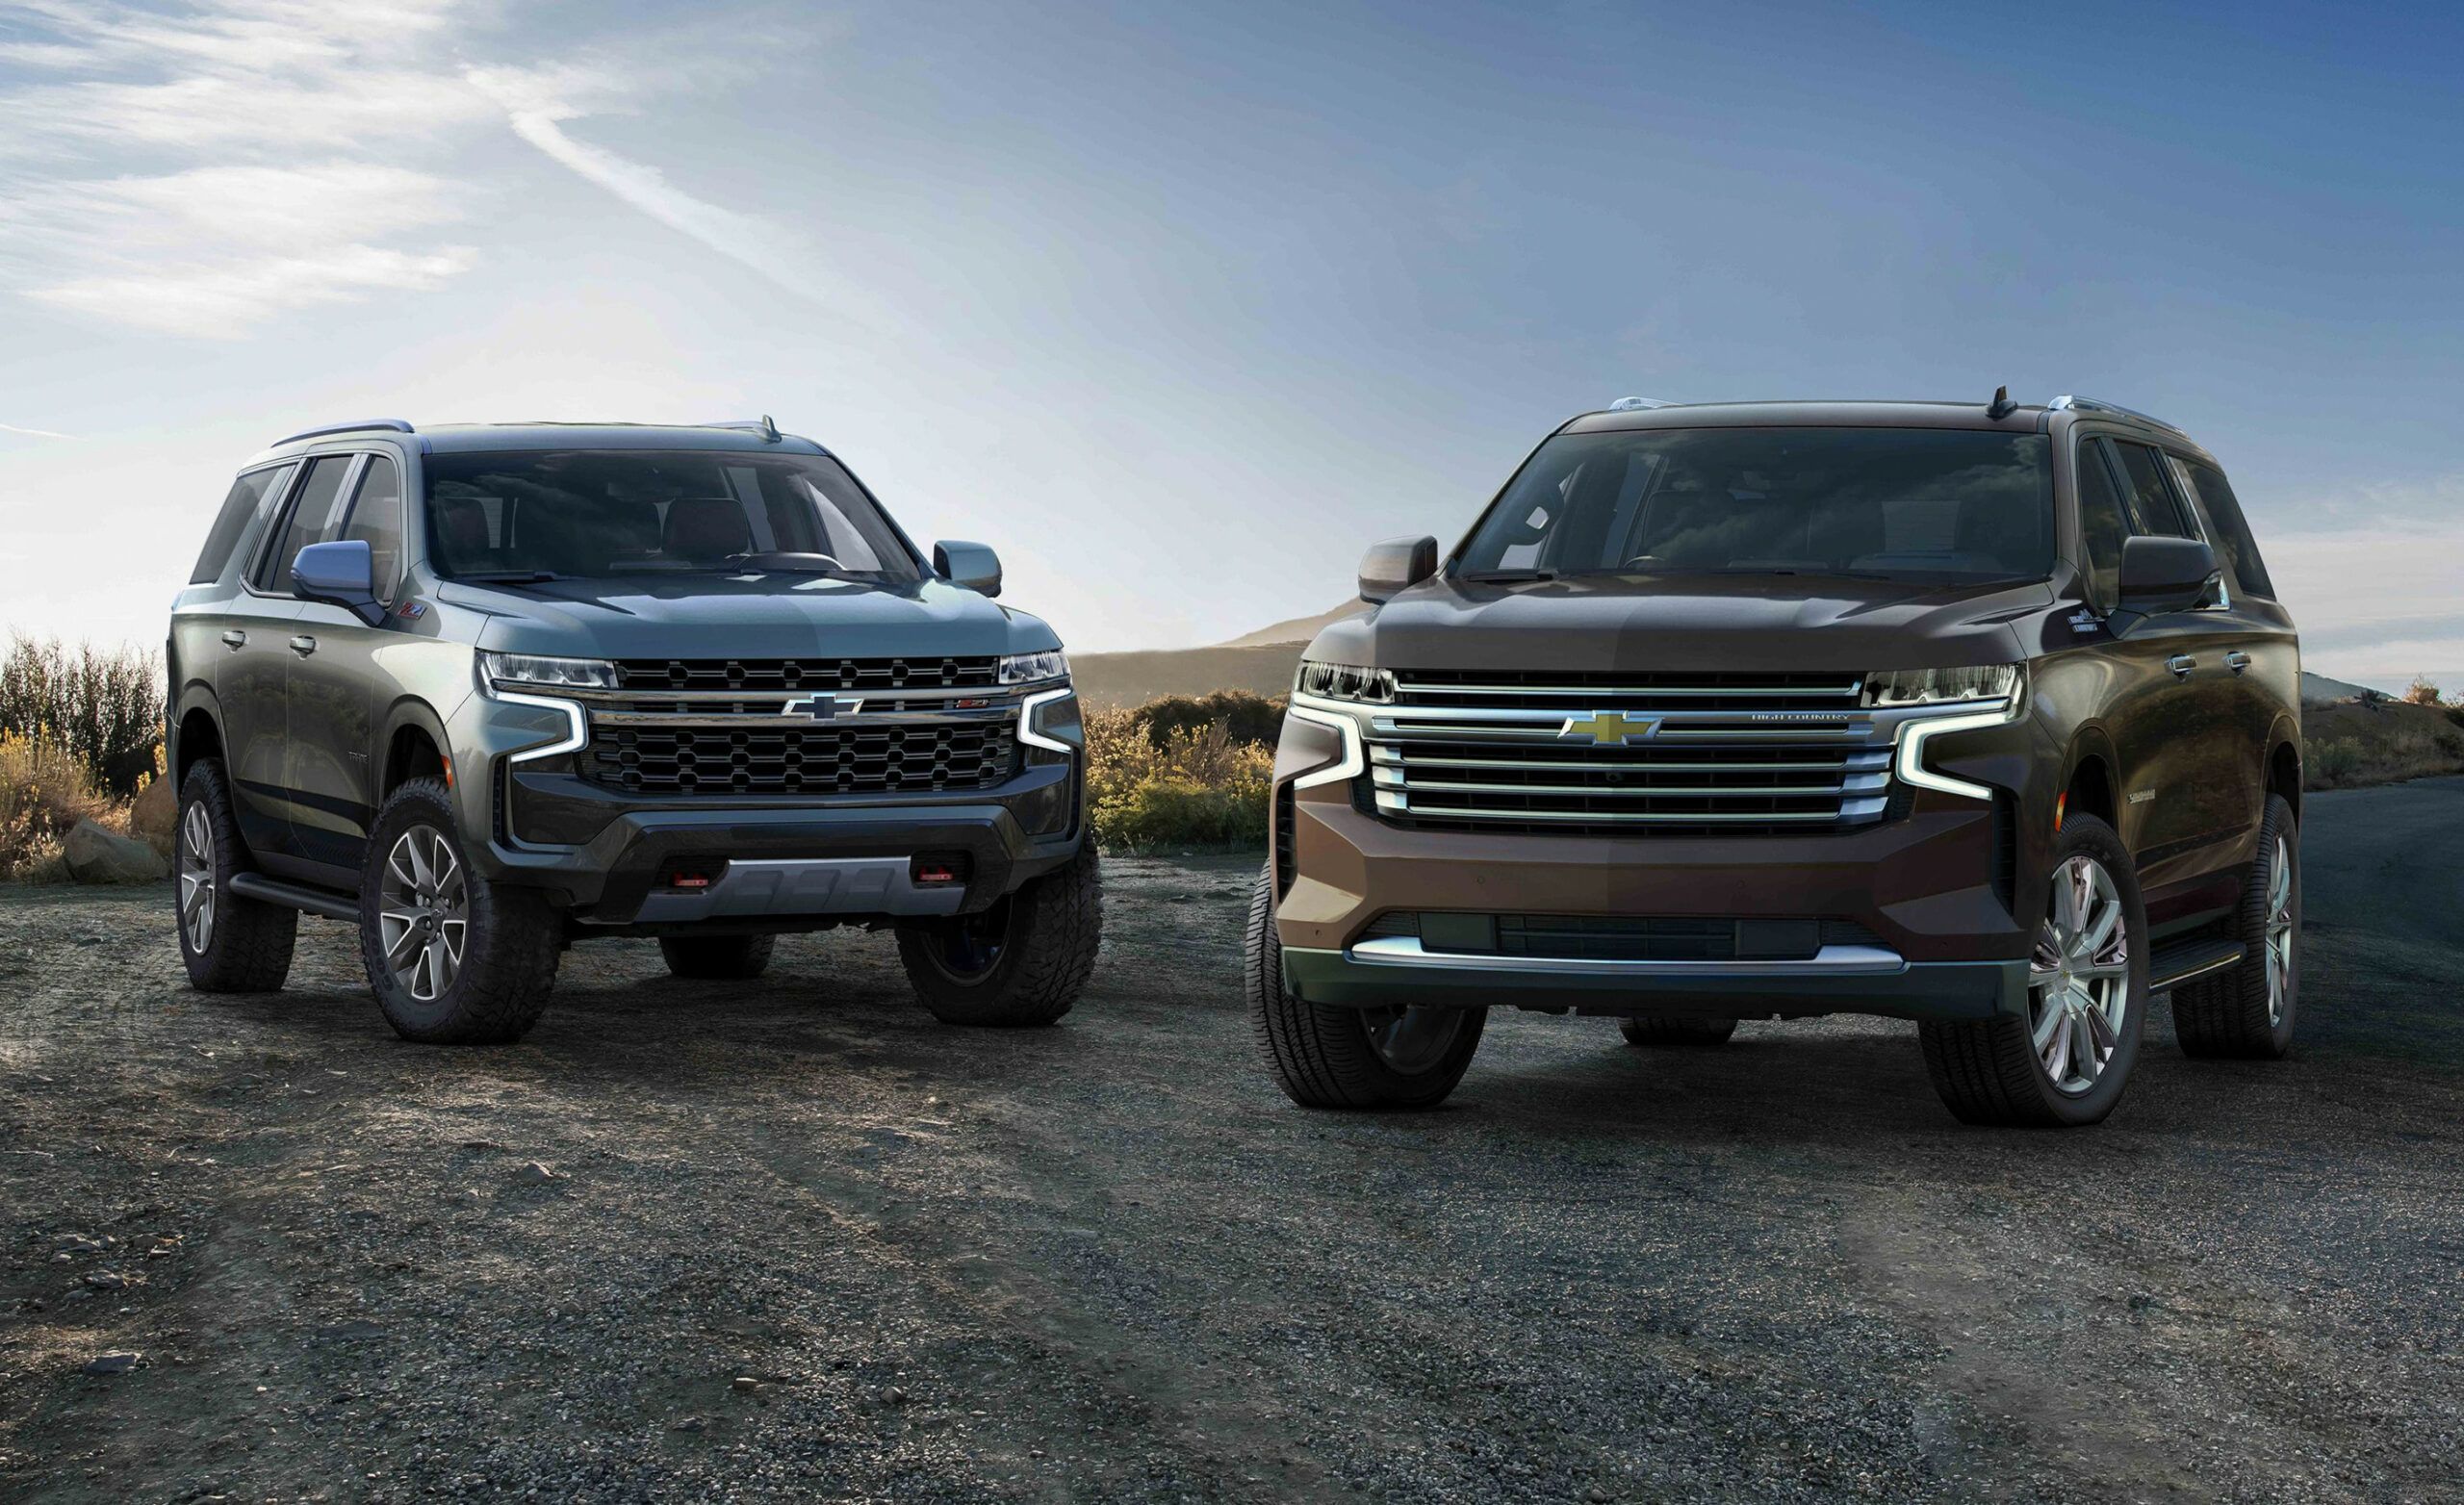 Exterior and Interior 2022 Chevrolet Grill